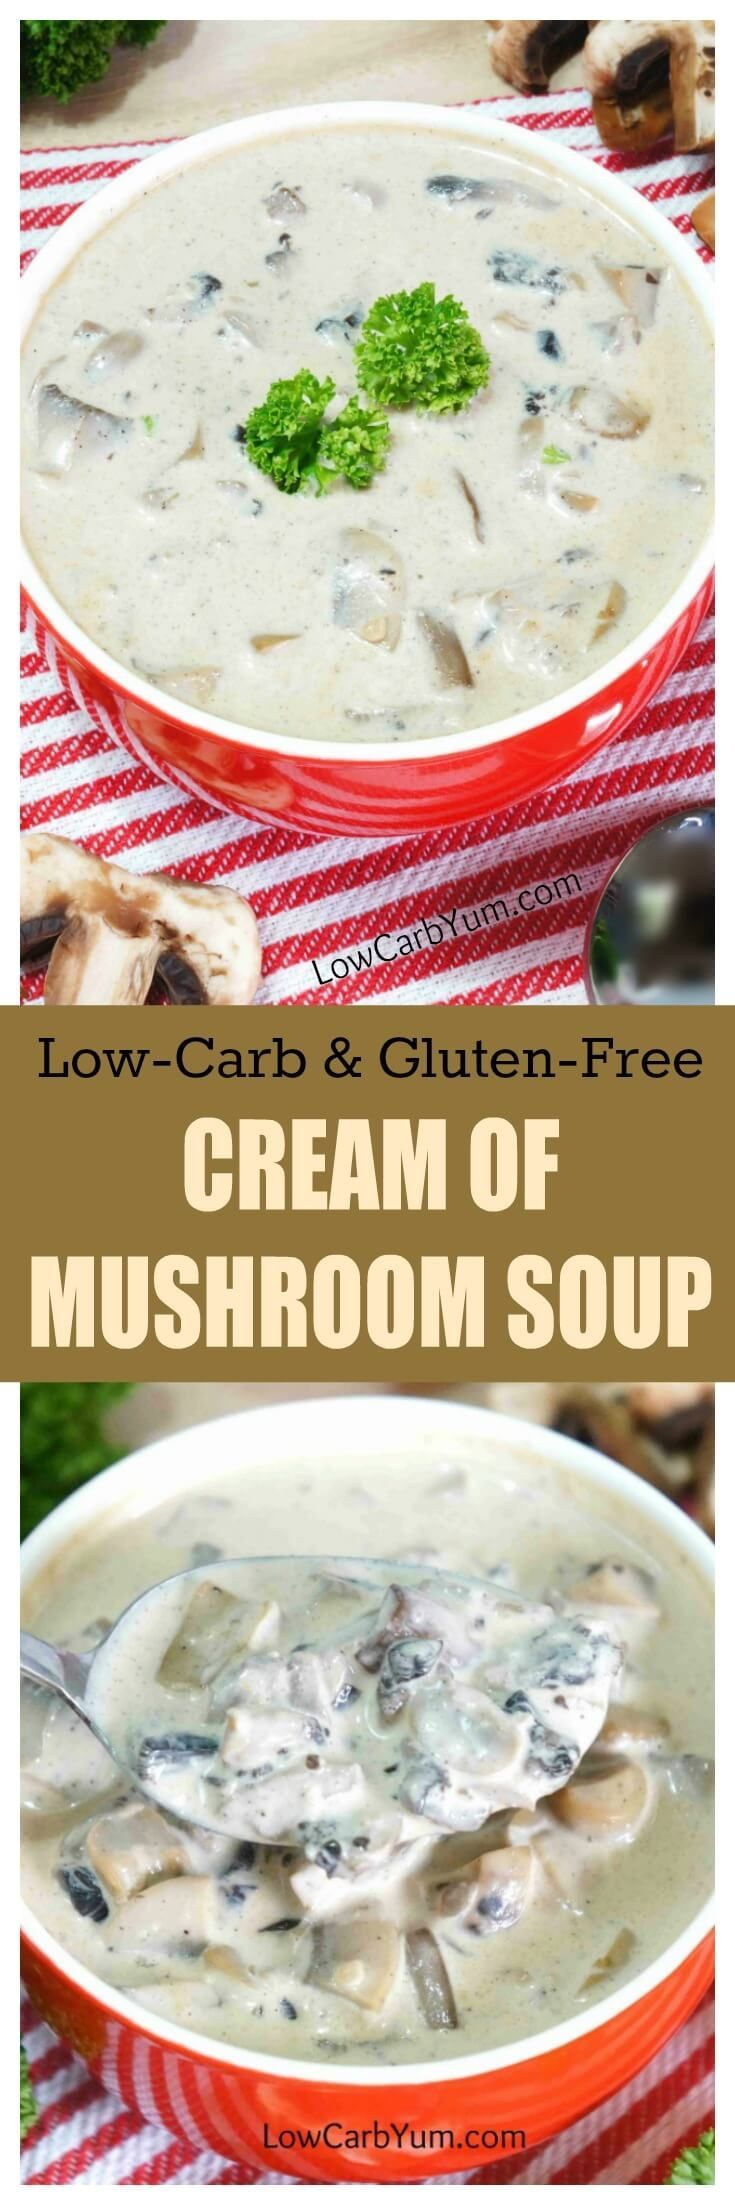 Cream of mushroom soup often contains high carb thickeners. This low carb gluten free cream of mushroom soup uses a gum thickener instead.